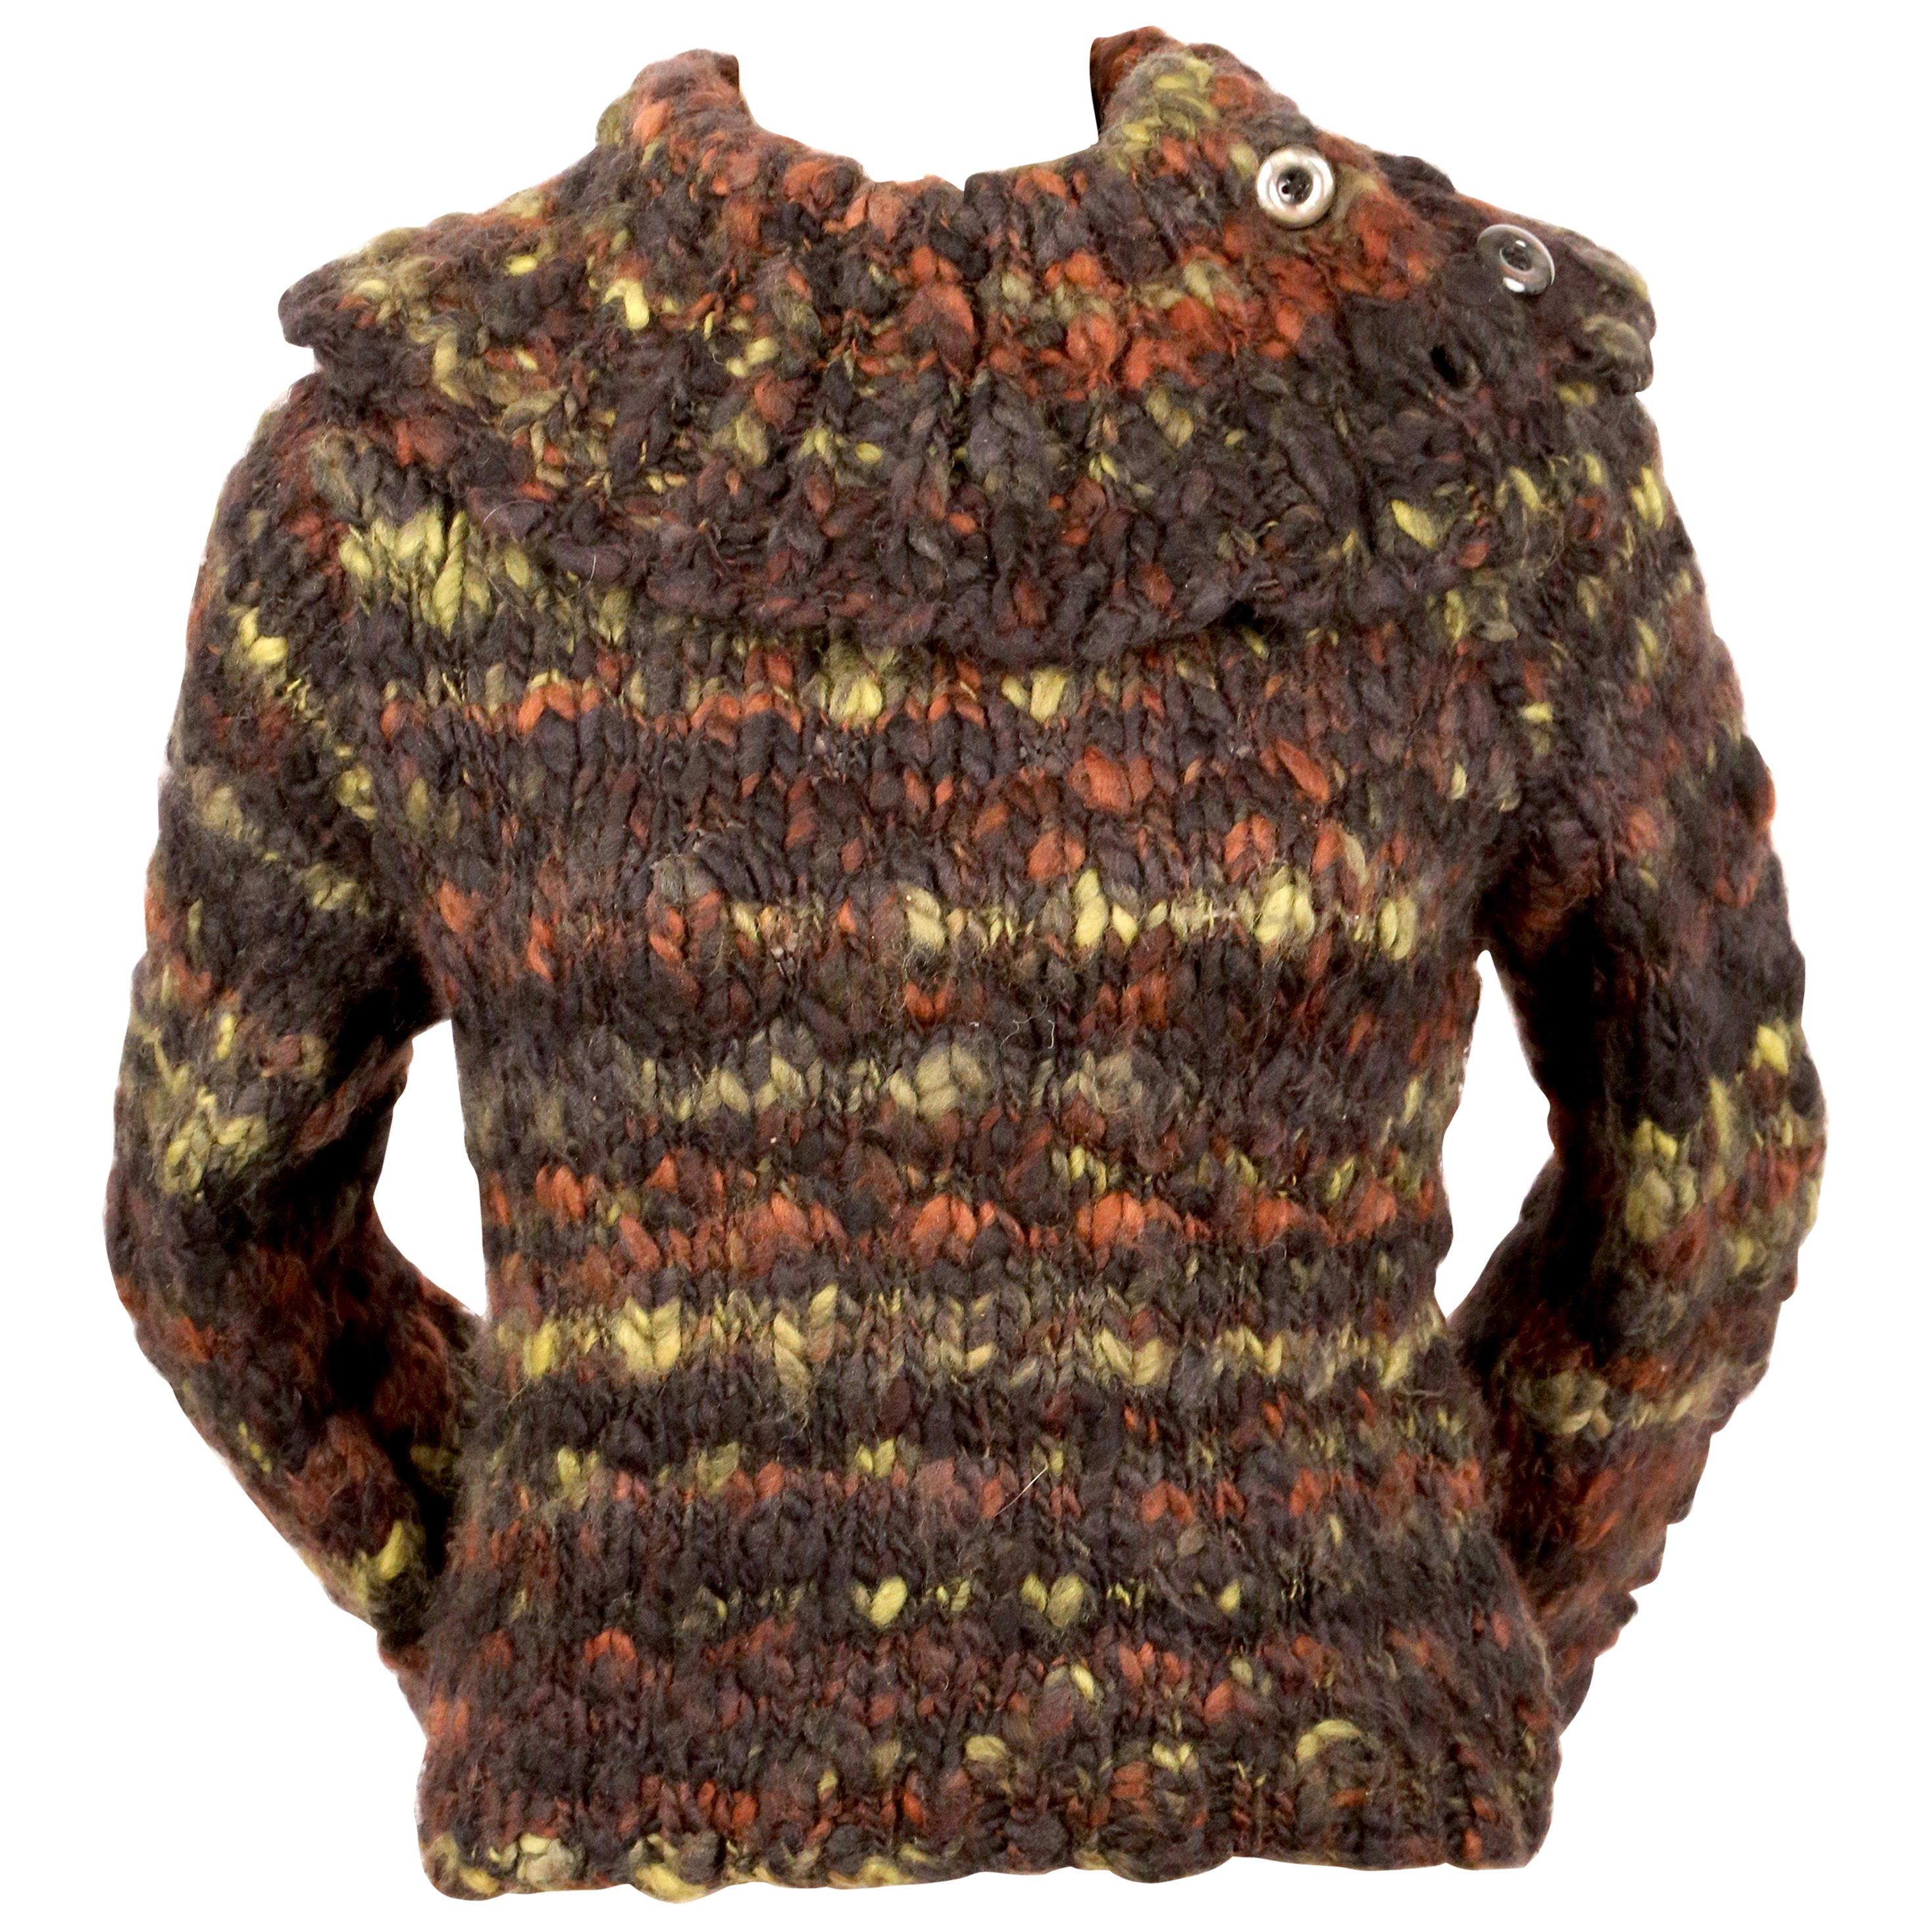 1990's MITSUHIRO MATSUDA chunky hand knit wool sweater with extra long arms